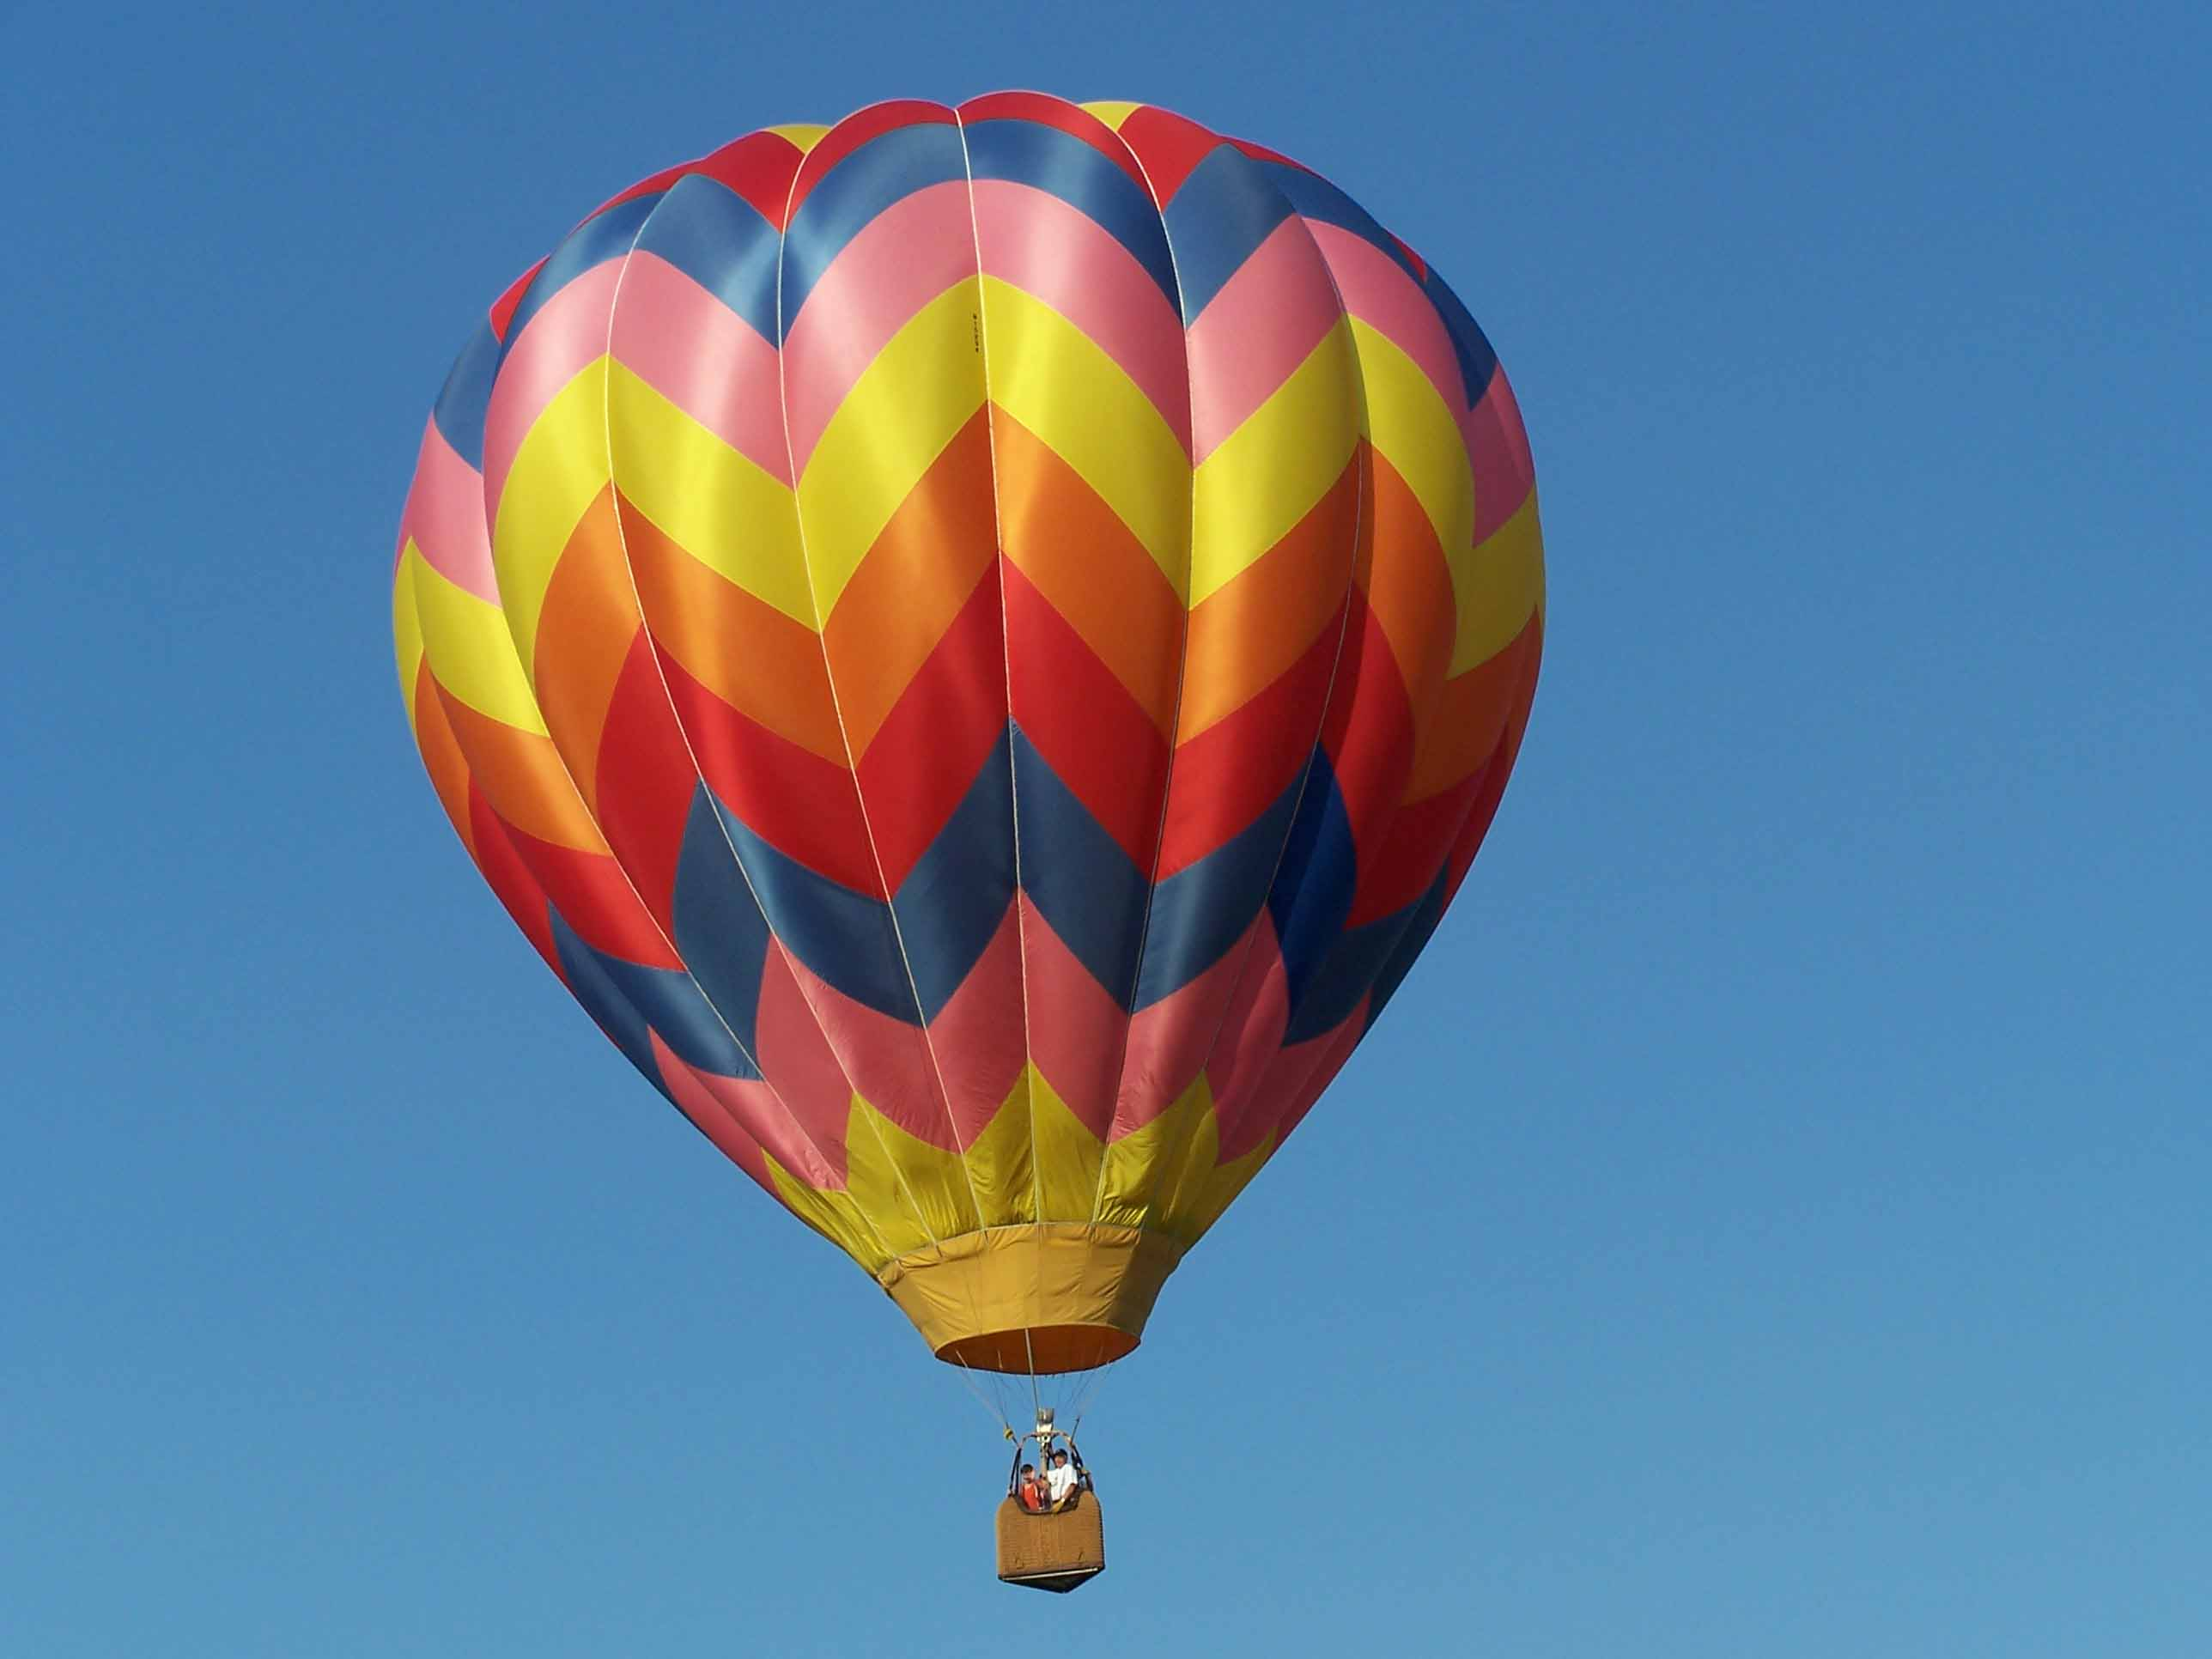 Balloons on Pinterest | Hot Air Balloon, Outdoor ...